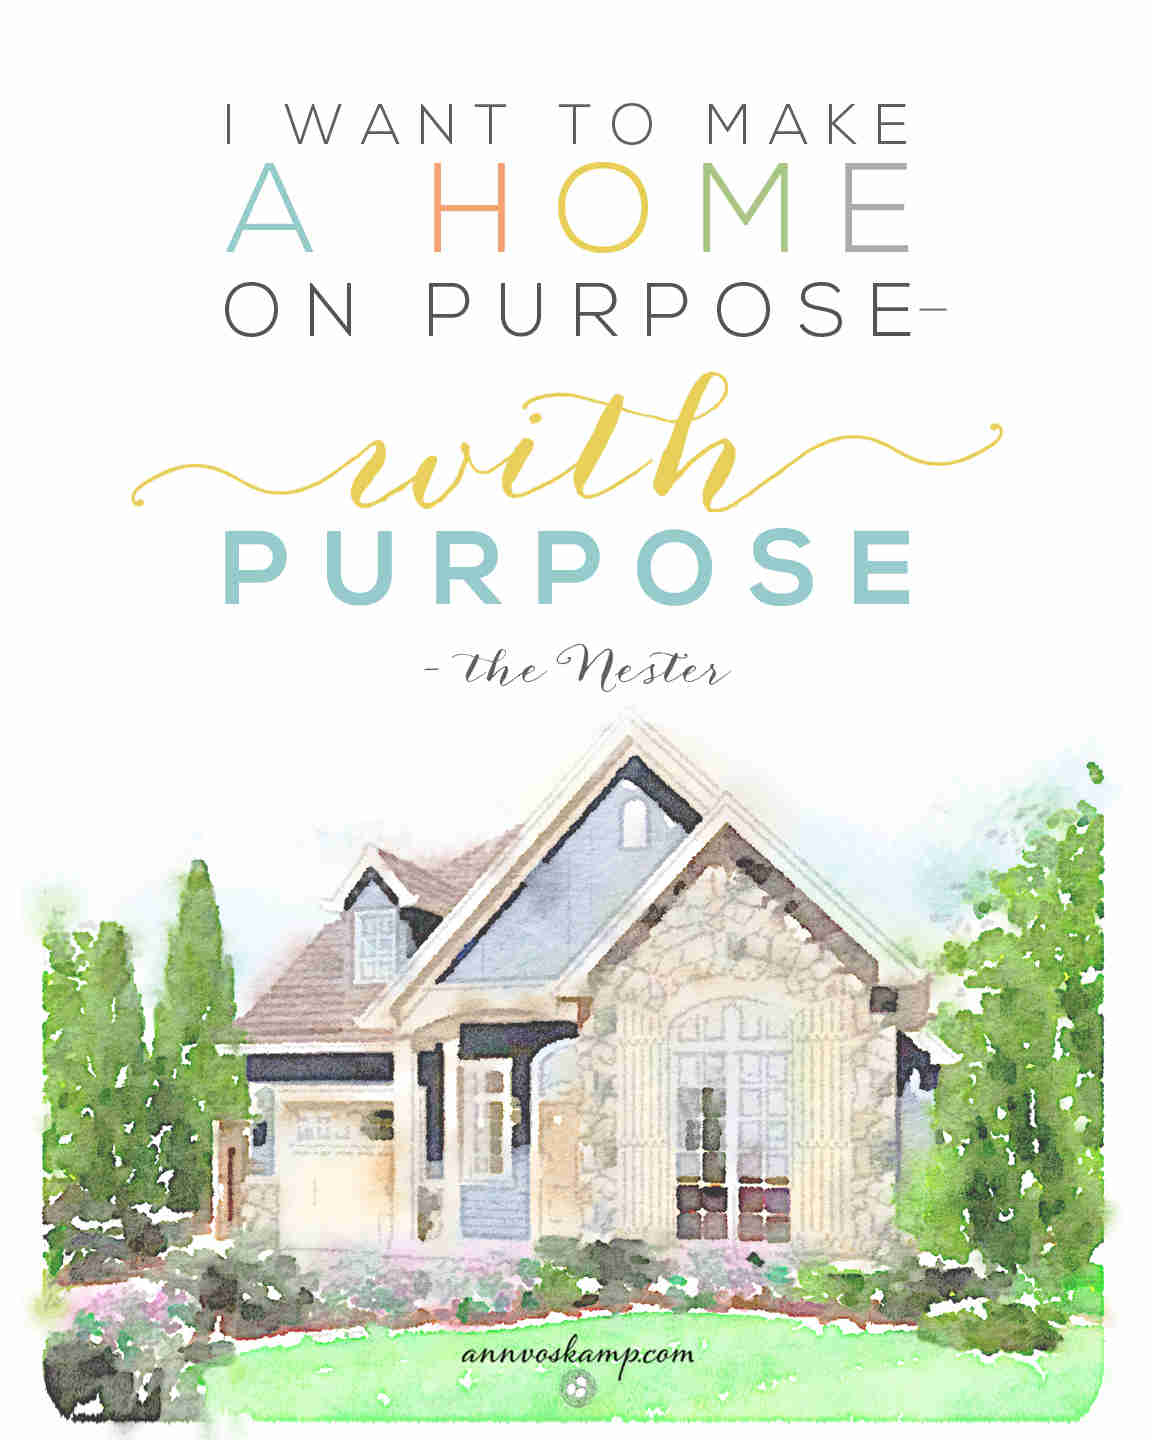 A Home on Purpose